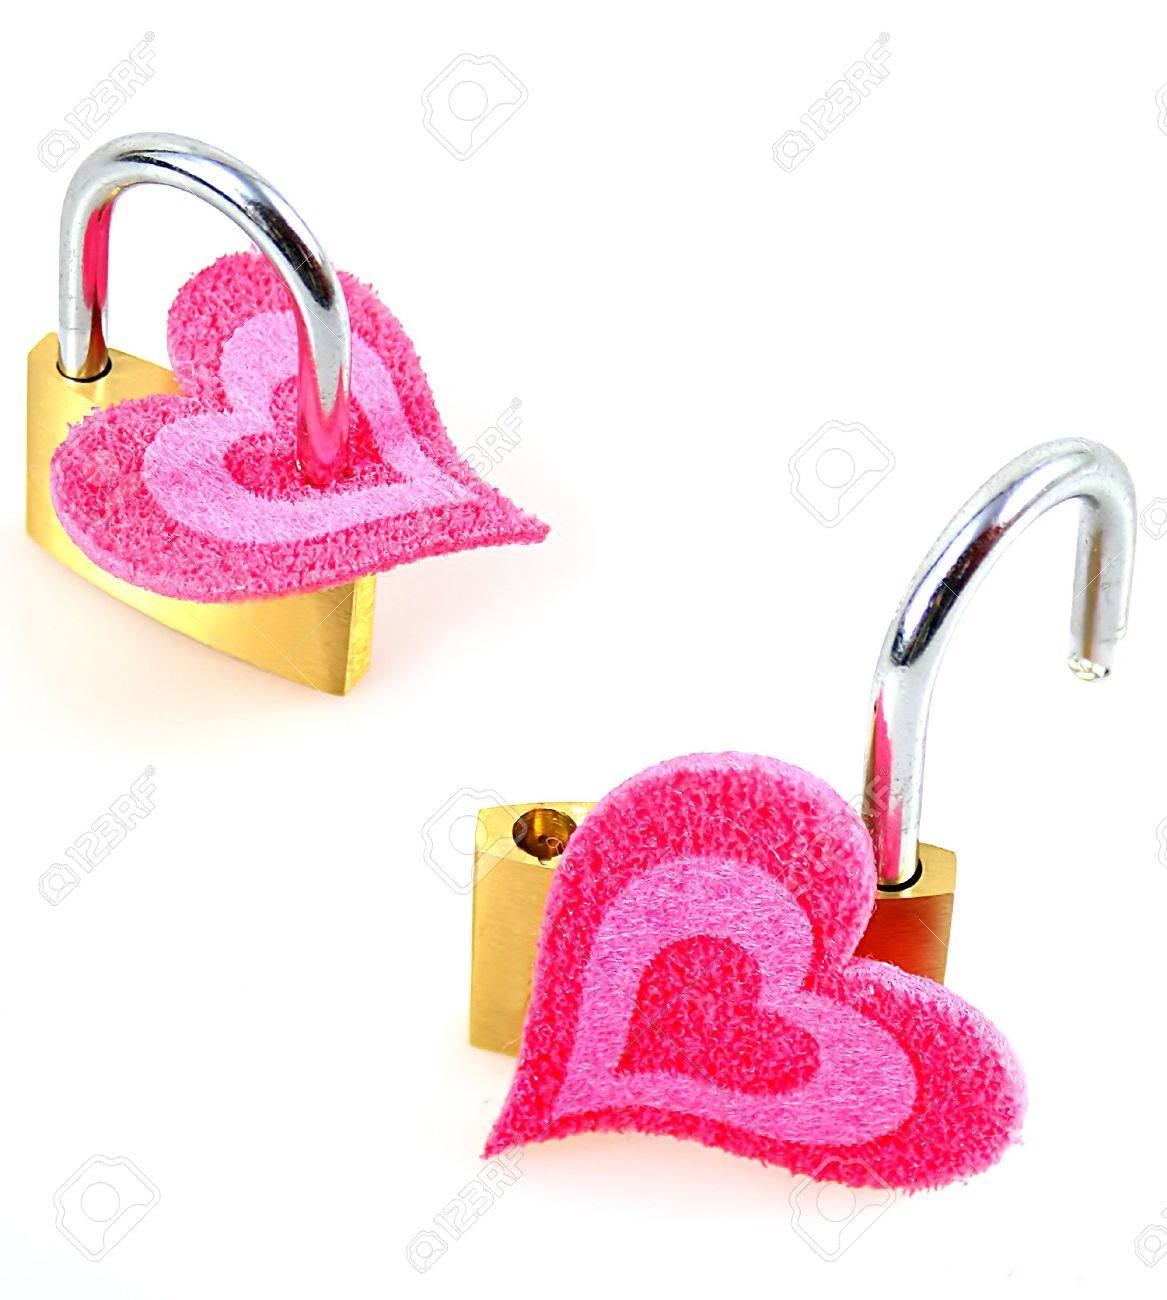 one closed and one opened heart as symbol for love and as sample for my isolated heart objects Stock Photo - 3179055